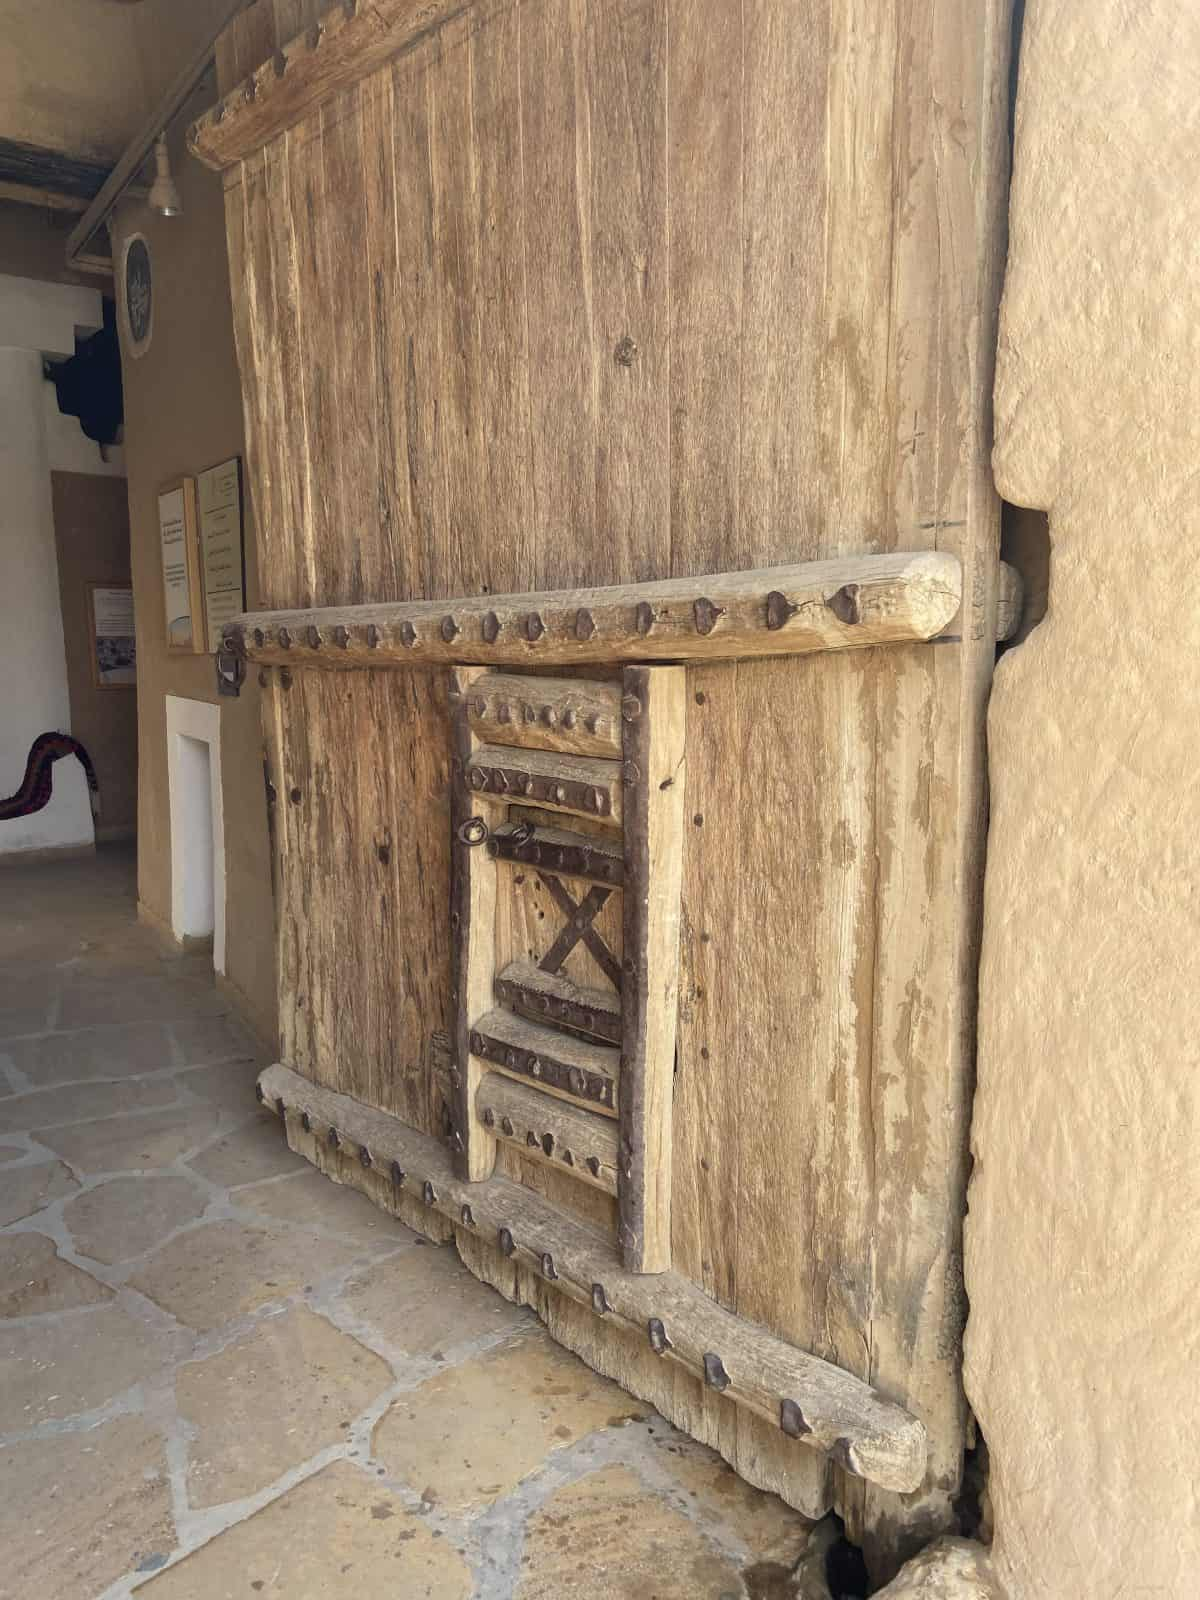 The door in which Ibn Saud, the father of Saudi Arabia, led his men through in overpowering the army in 1902.